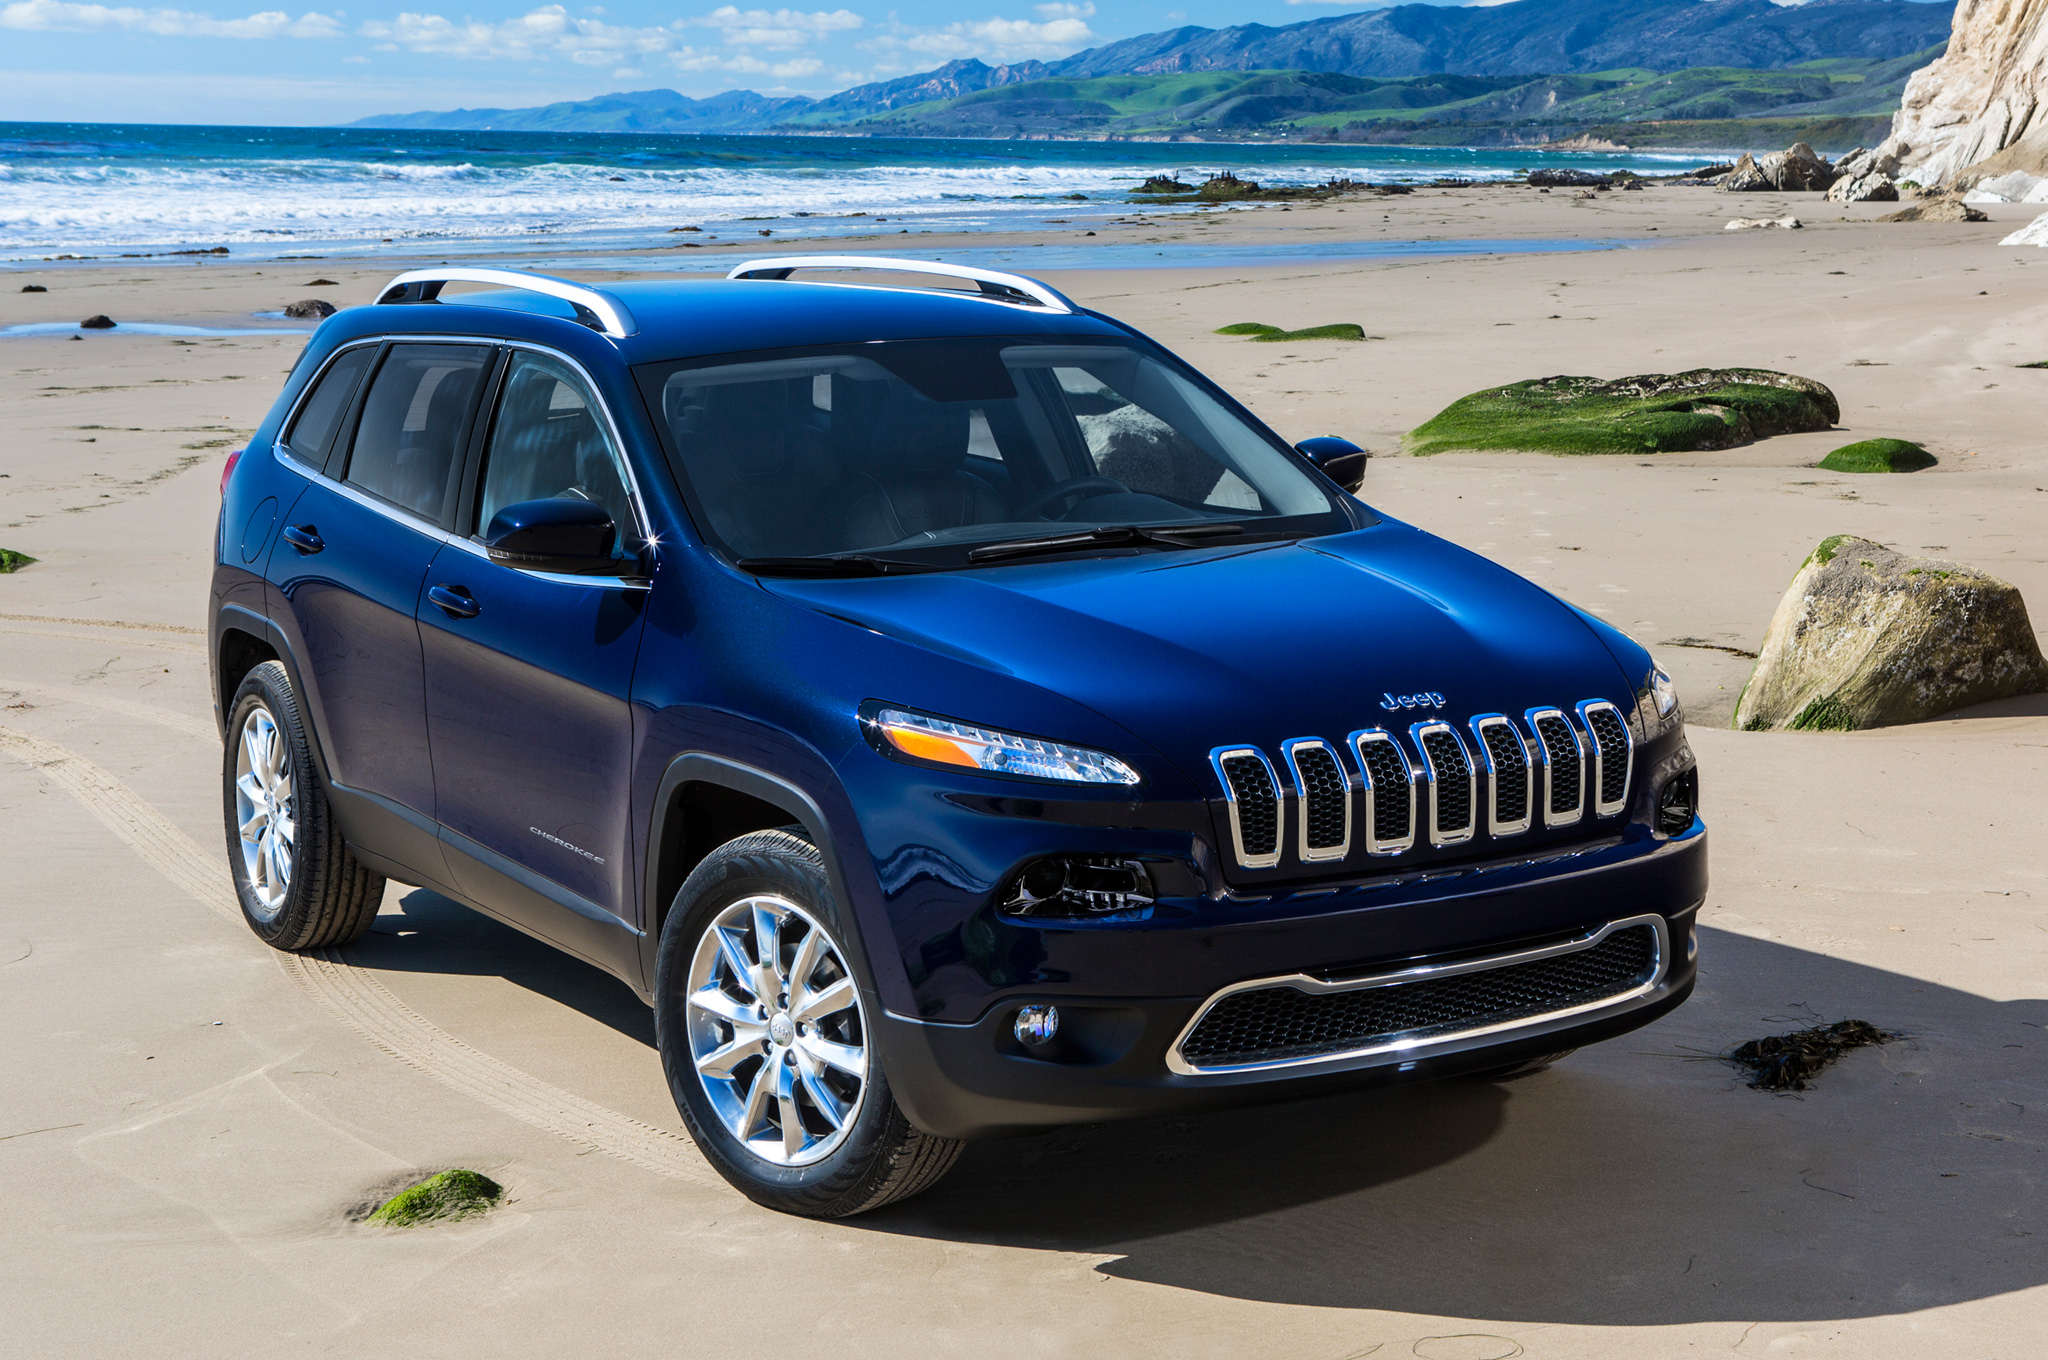 jeep cherokee images #6